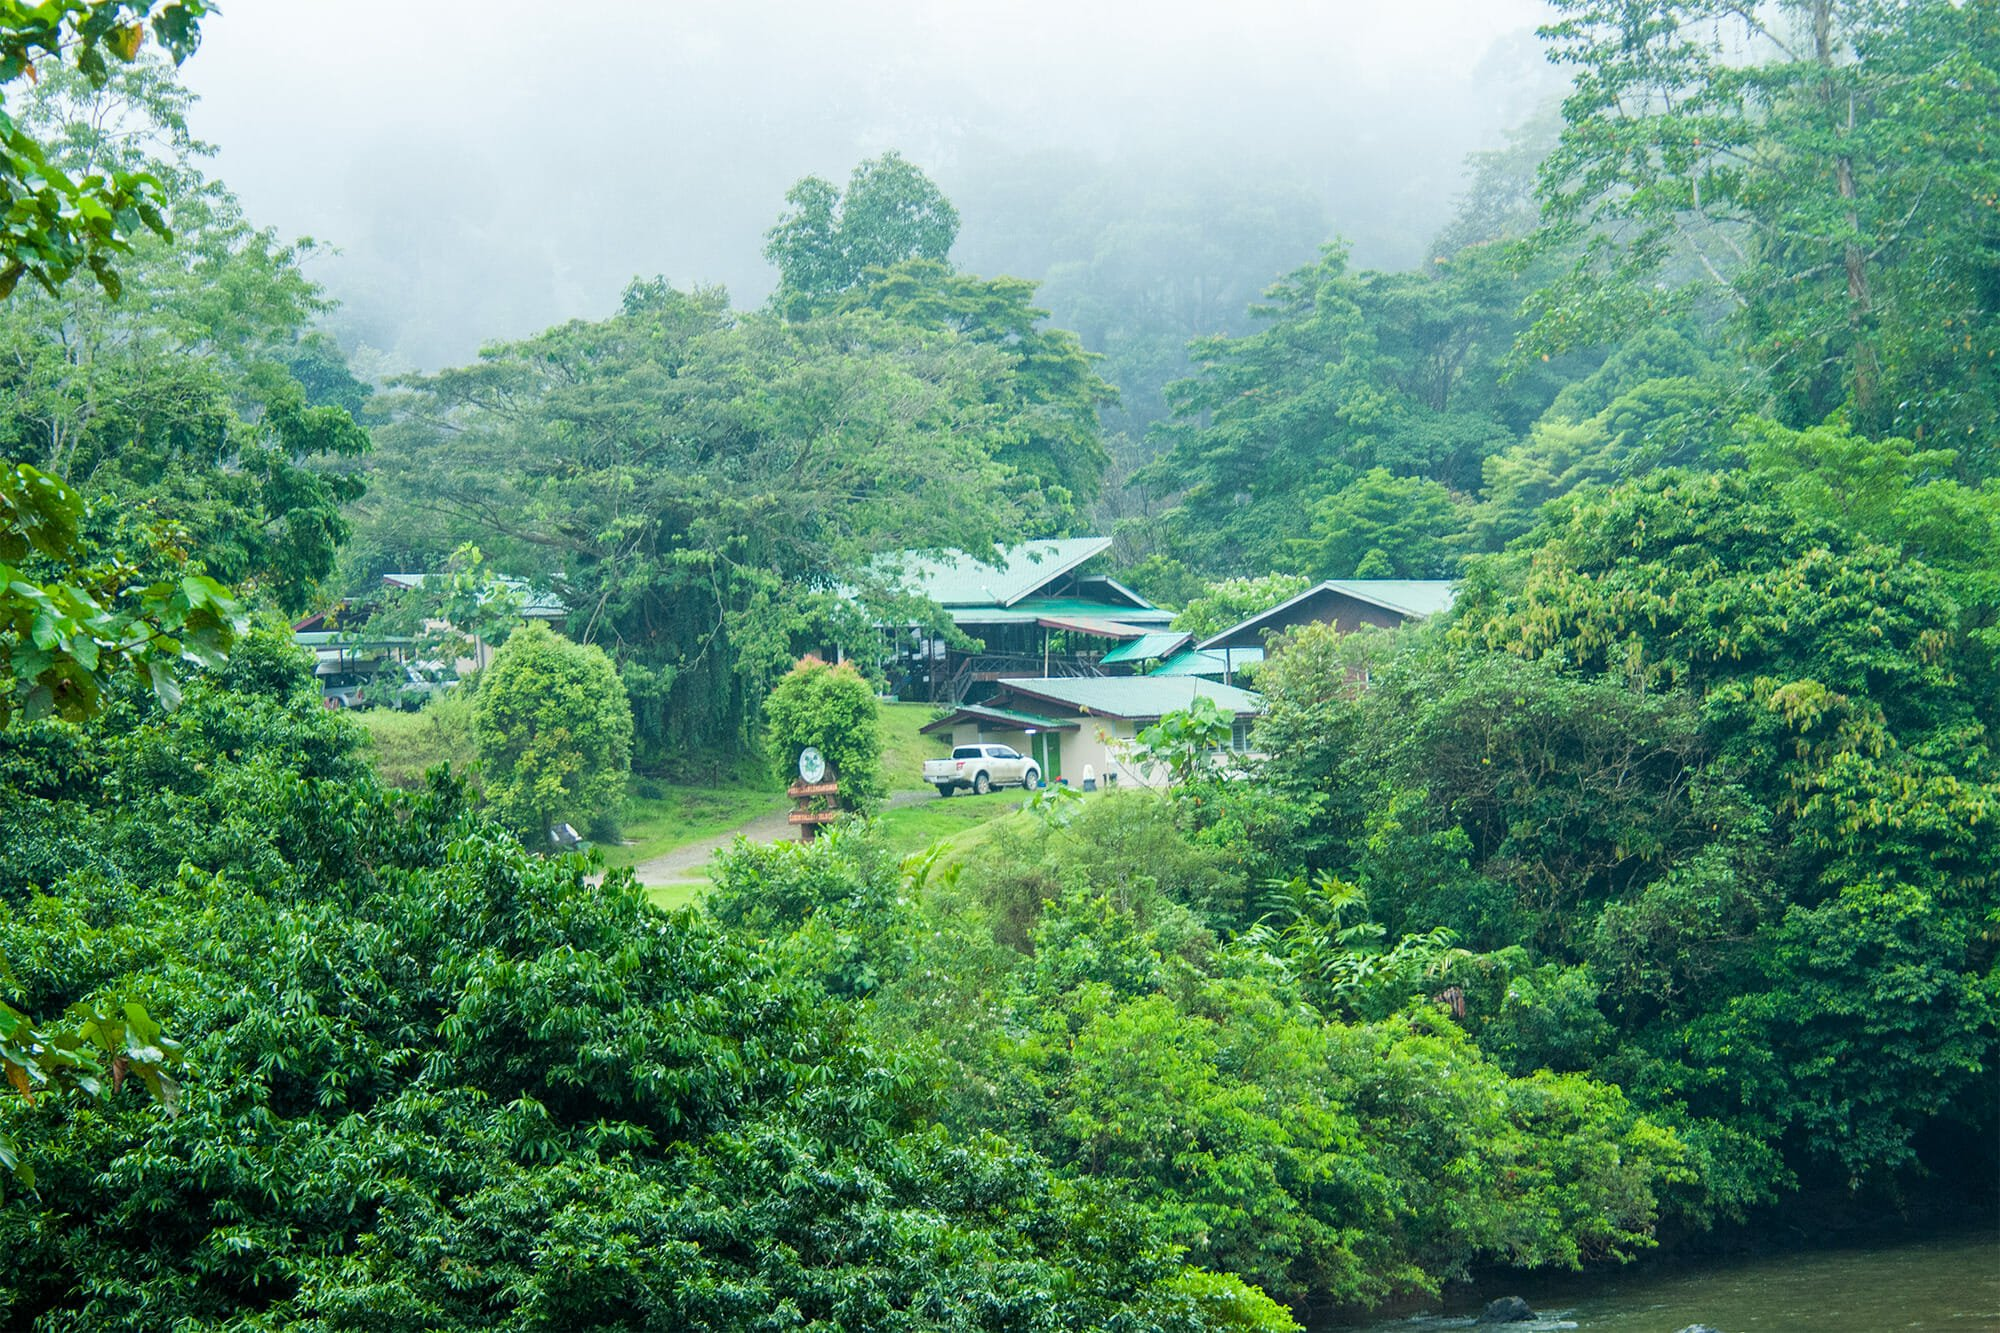 Danum Valley Field Center in Borneo